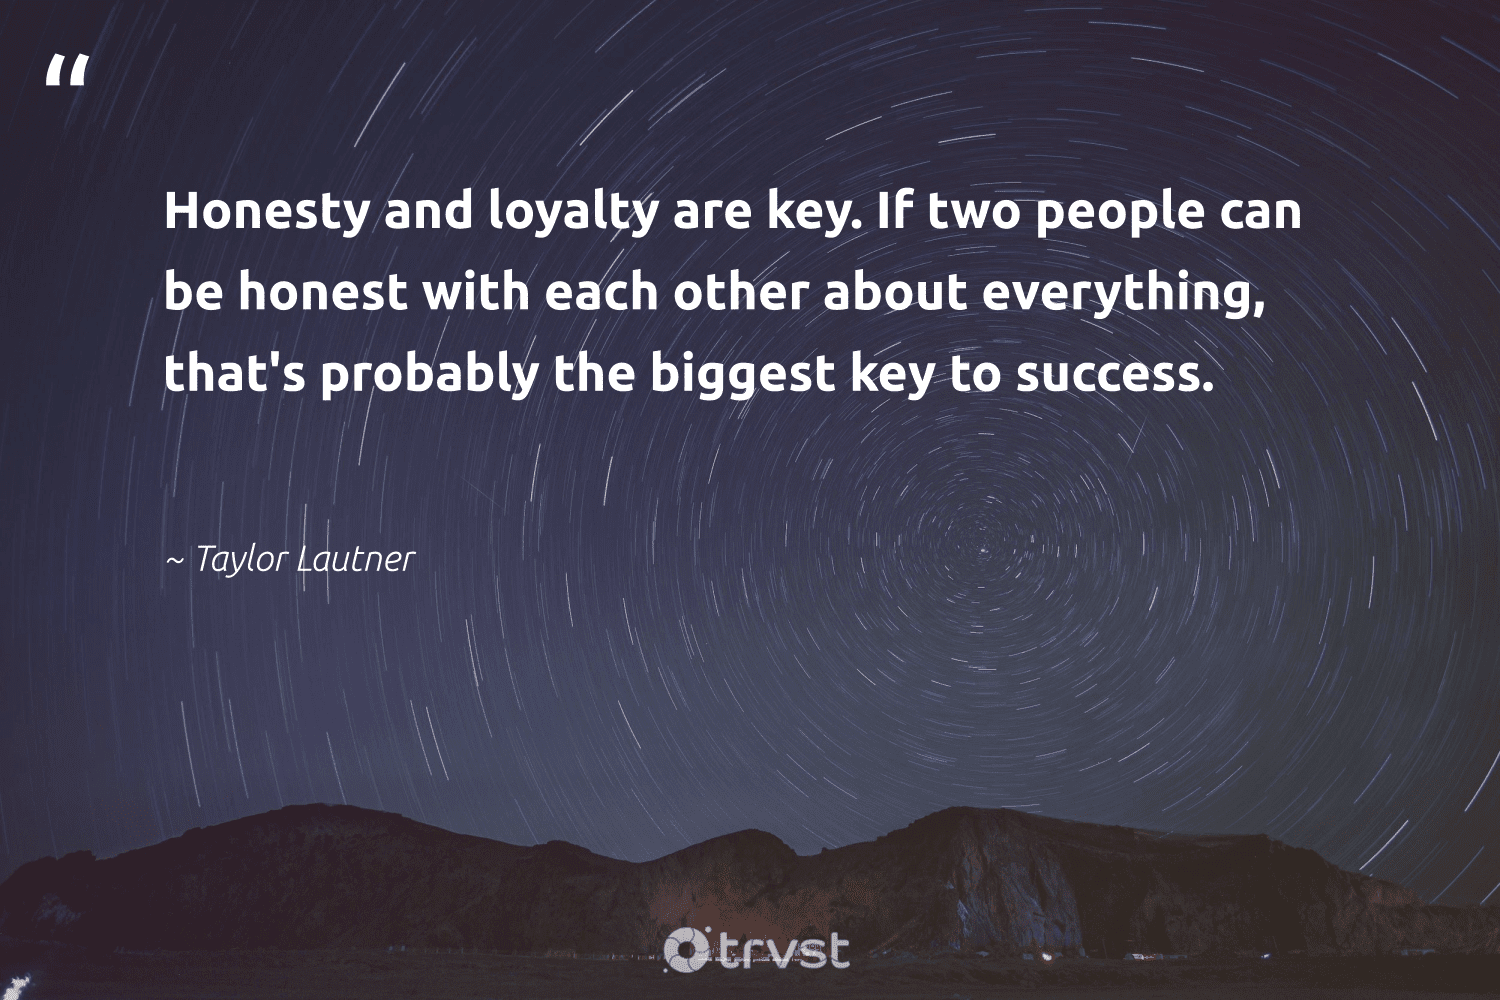 """""""Honesty and loyalty are key. If two people can be honest with each other about everything, that's probably the biggest key to success.""""  - Taylor Lautner #trvst #quotes #success #motivation #successtips #futureofwork #ecoconscious #productive #acheivement #nevergiveup #gogreen #mostwontiwill"""